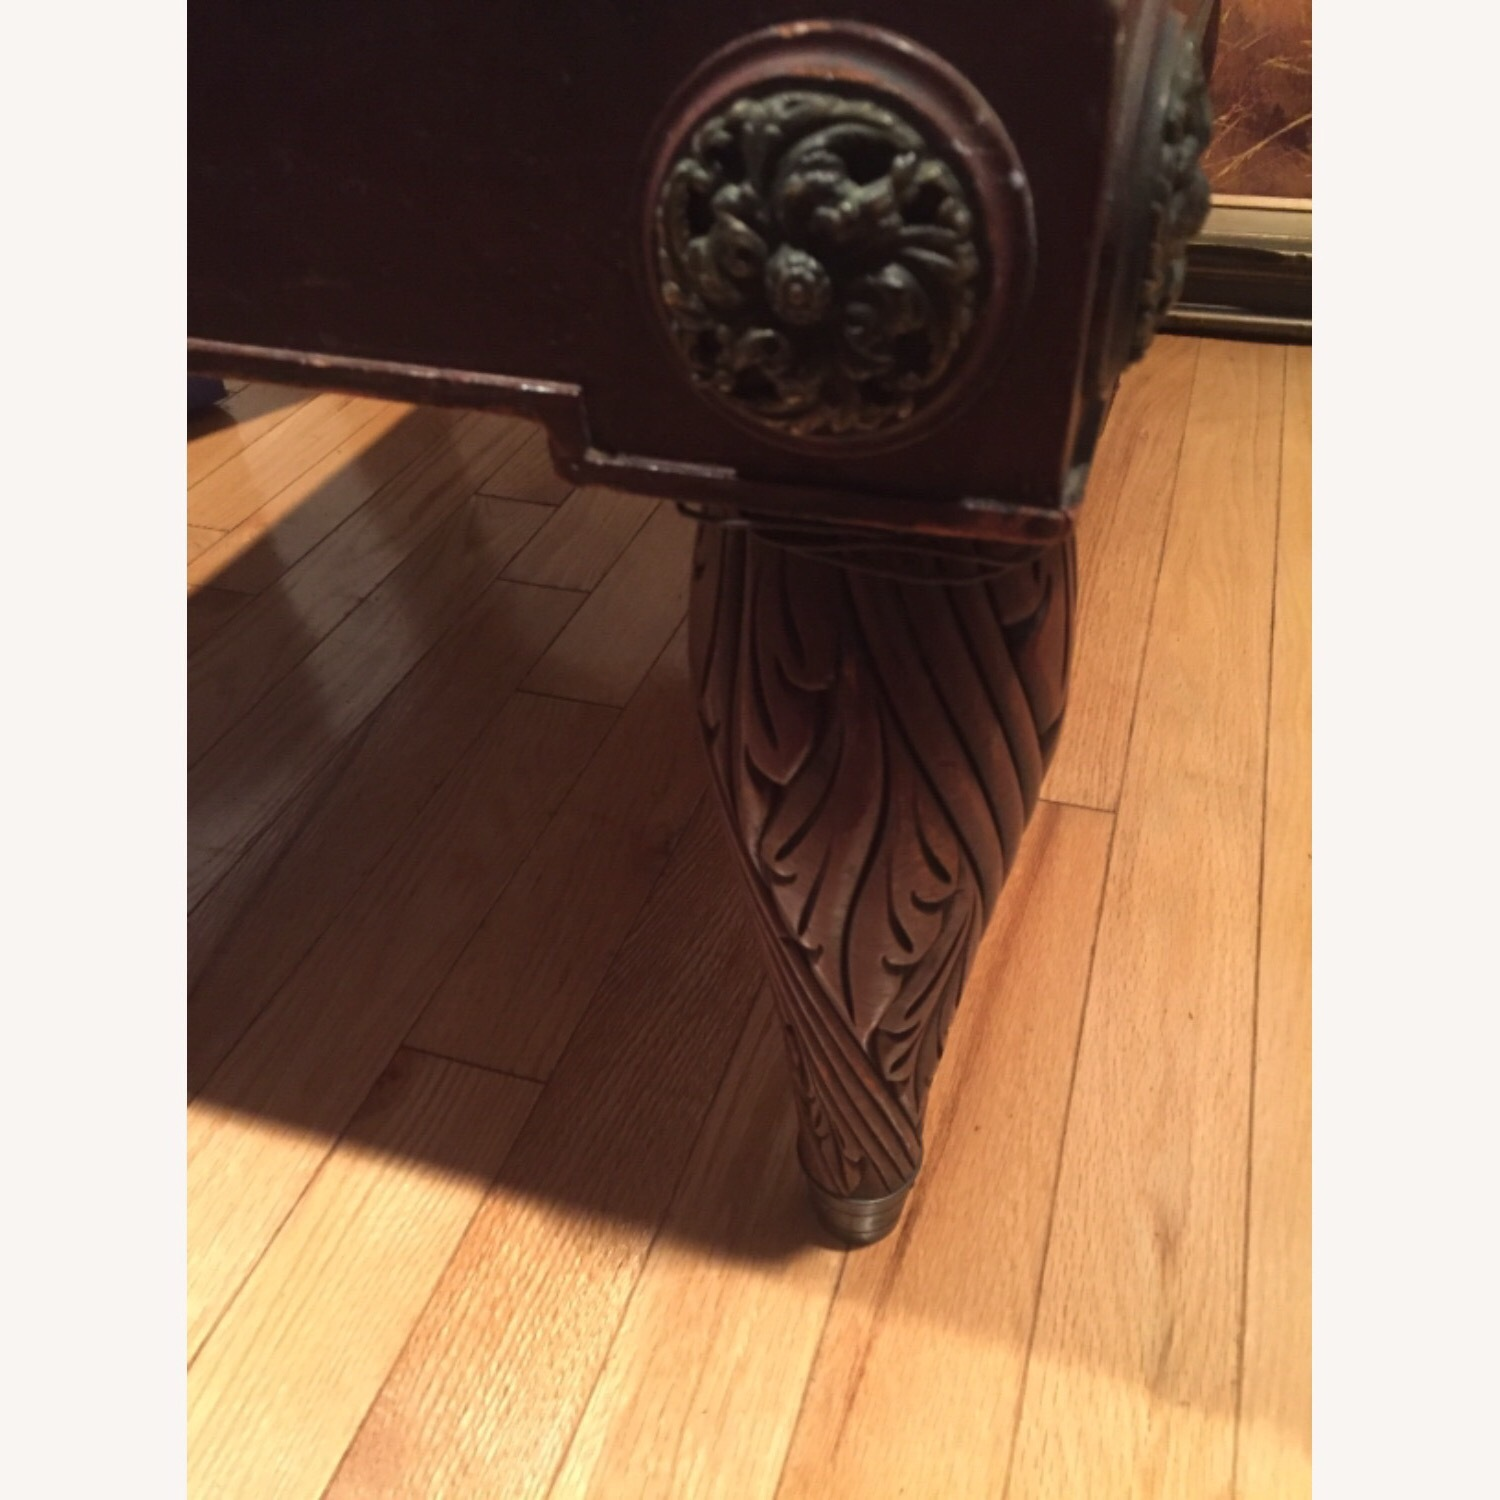 Antique Mahogany/Leather Side Table - image-7